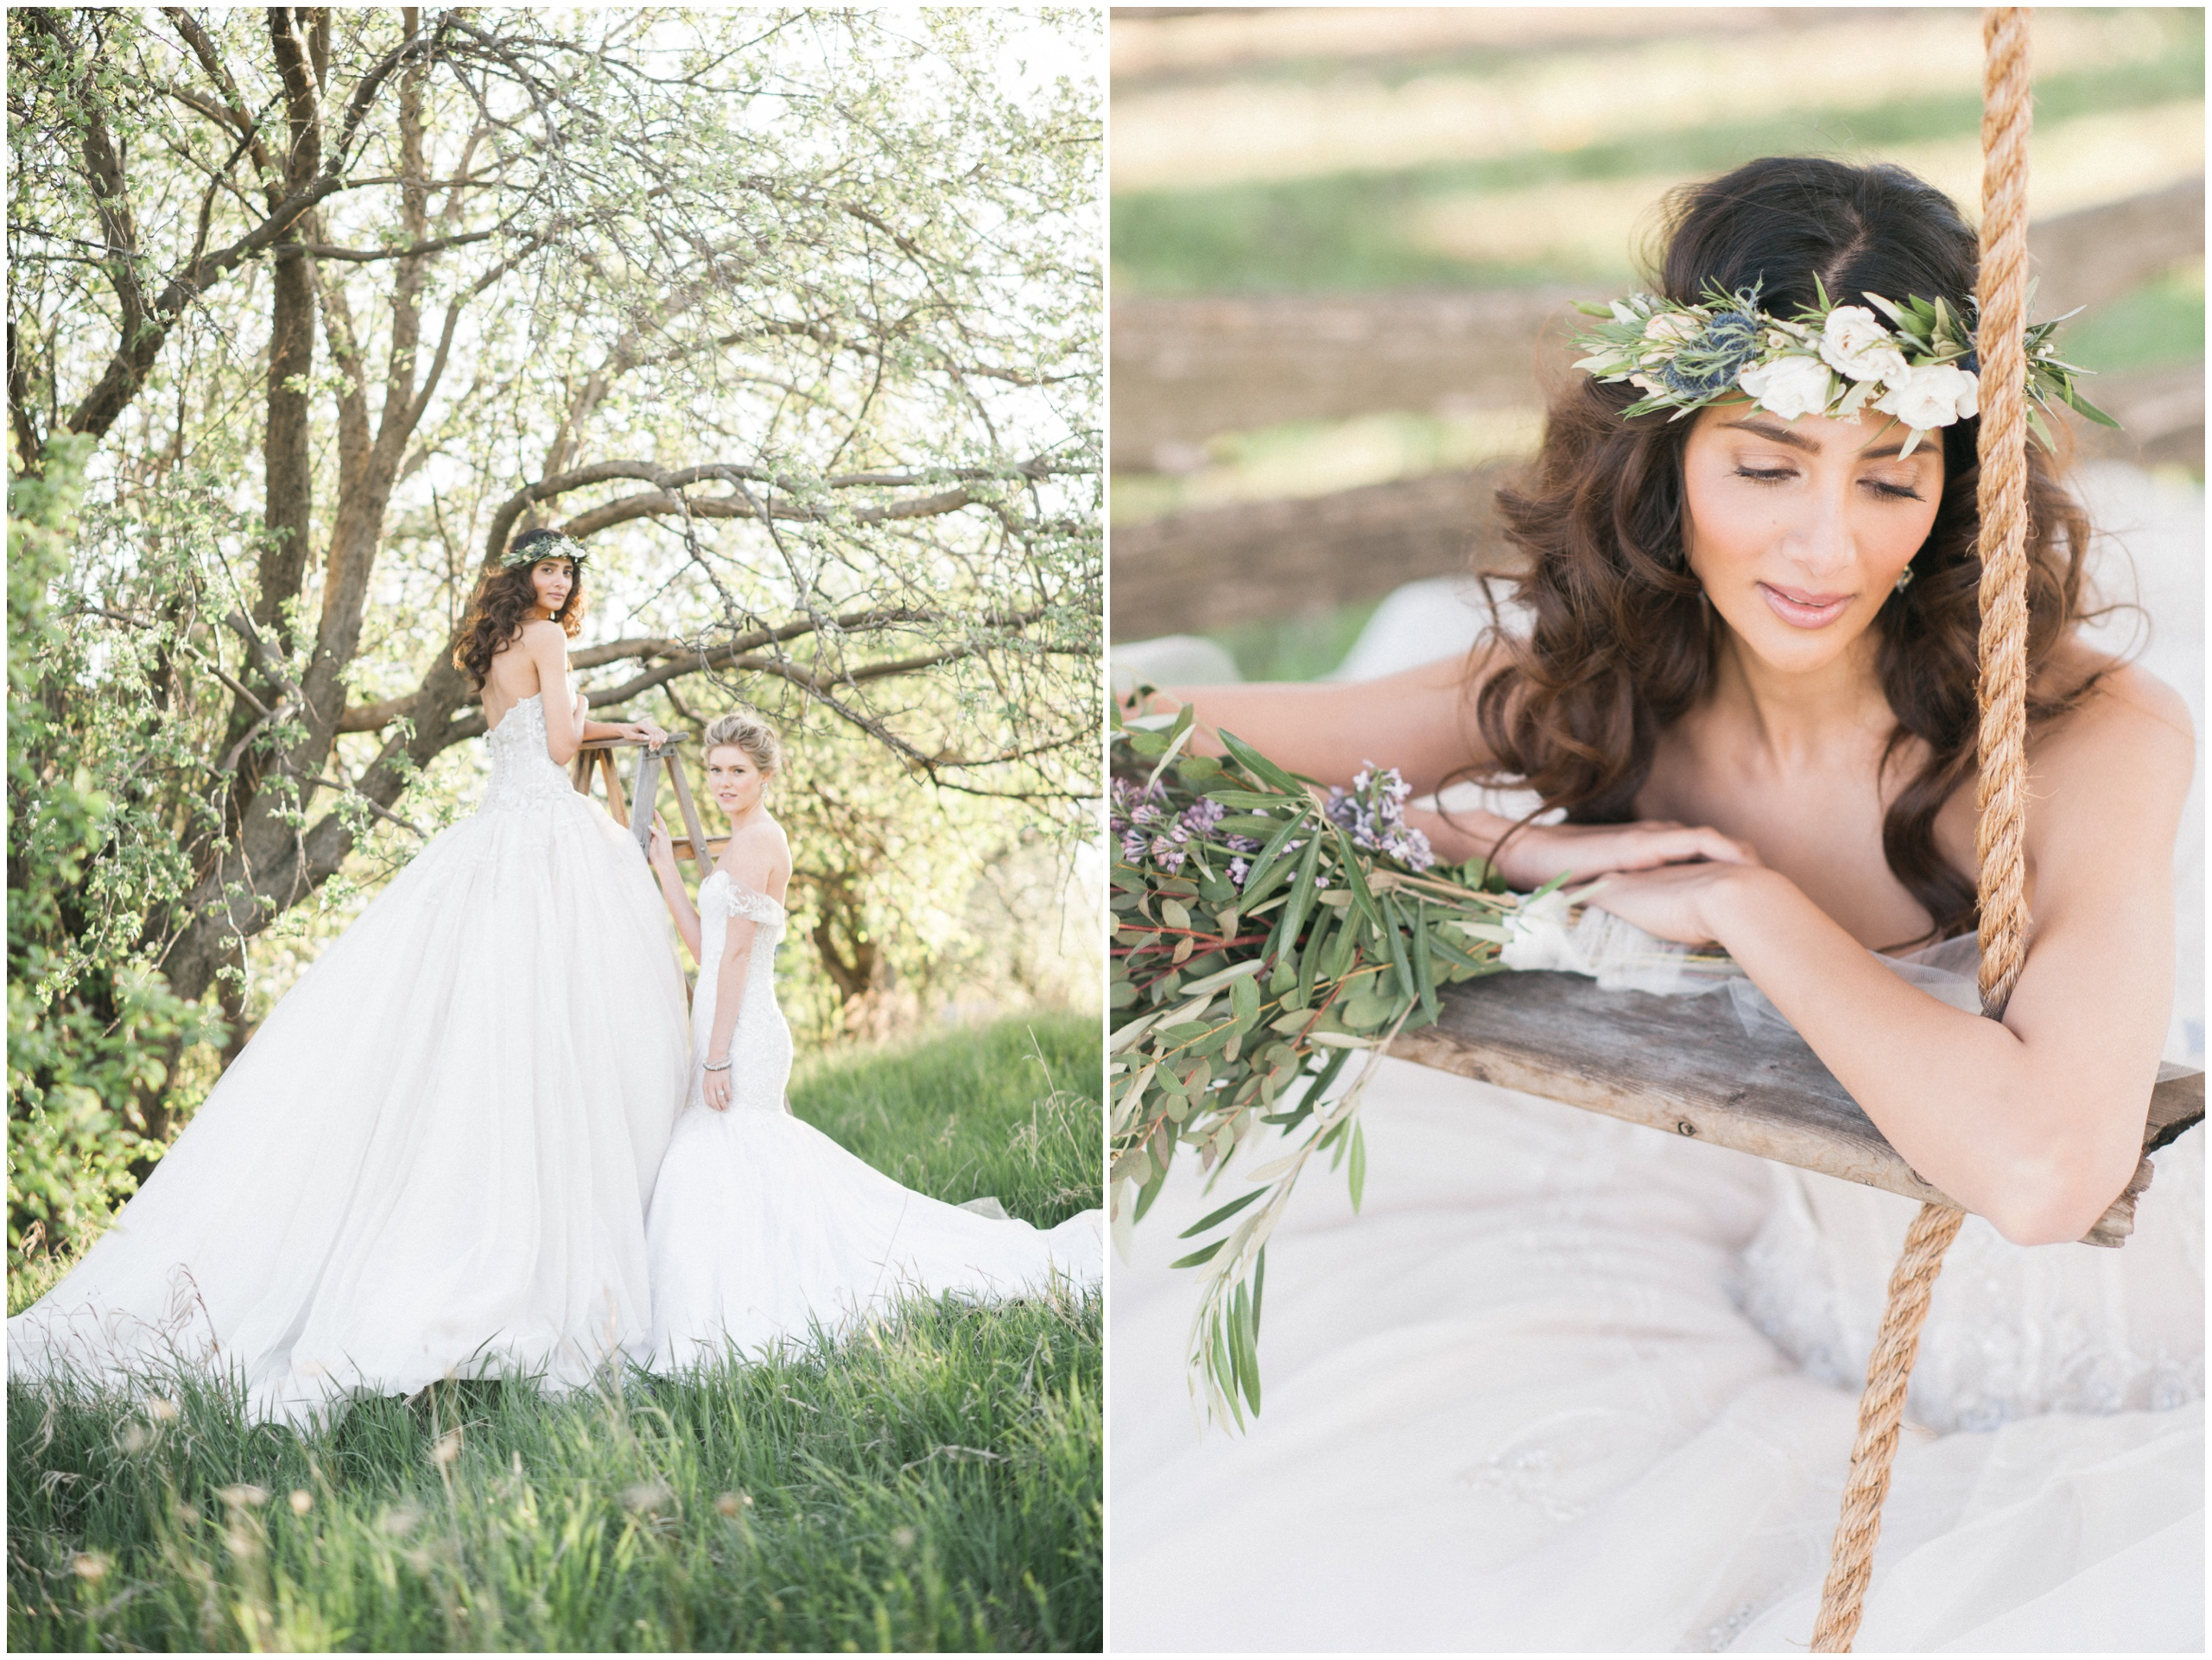 Wedding Inspiration: Brides wearing flower crown and Ines Di Santo gowns on rustic wooden swing.